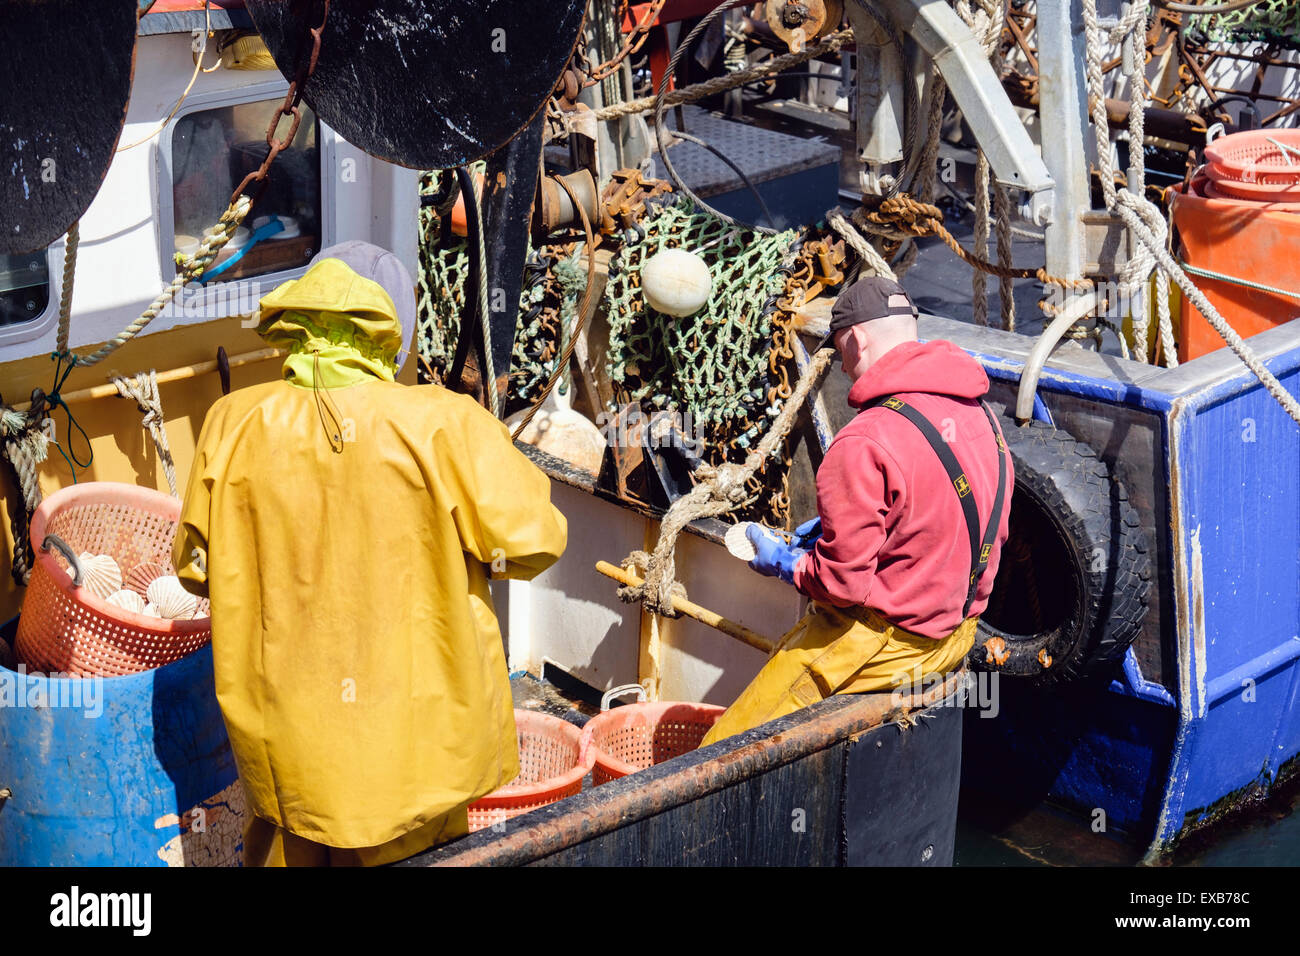 Fishermen in a fishing boat opening Scallop shells to remove fresh Scallops. Port Ellen Isle of Islay Hebrides Western - Stock Image